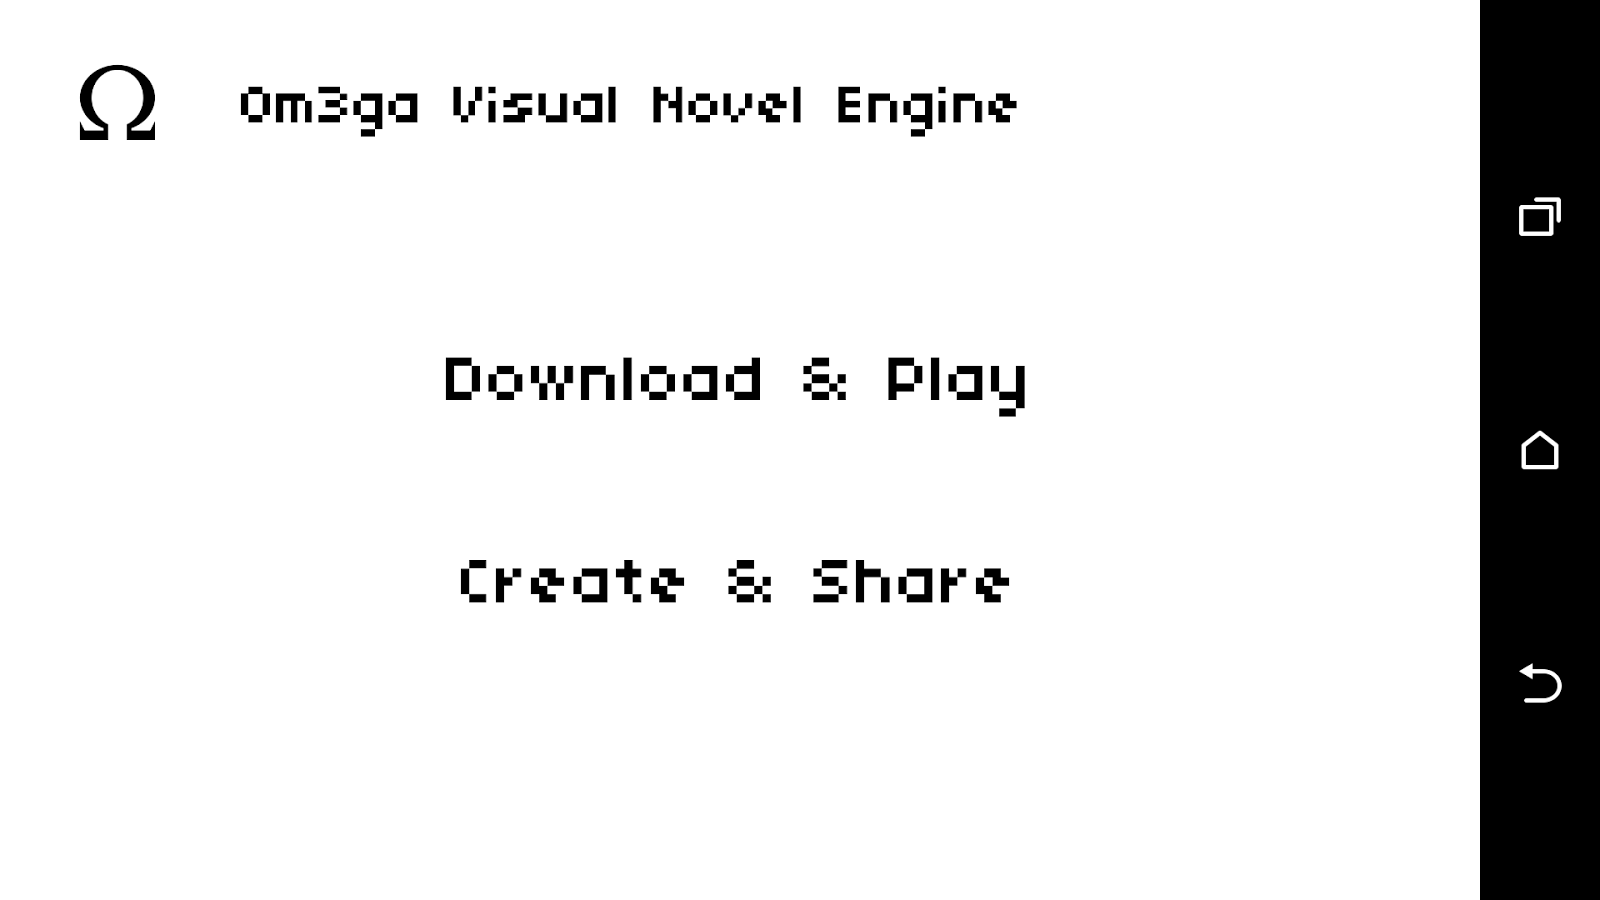 Visual Novel Engine- screenshot